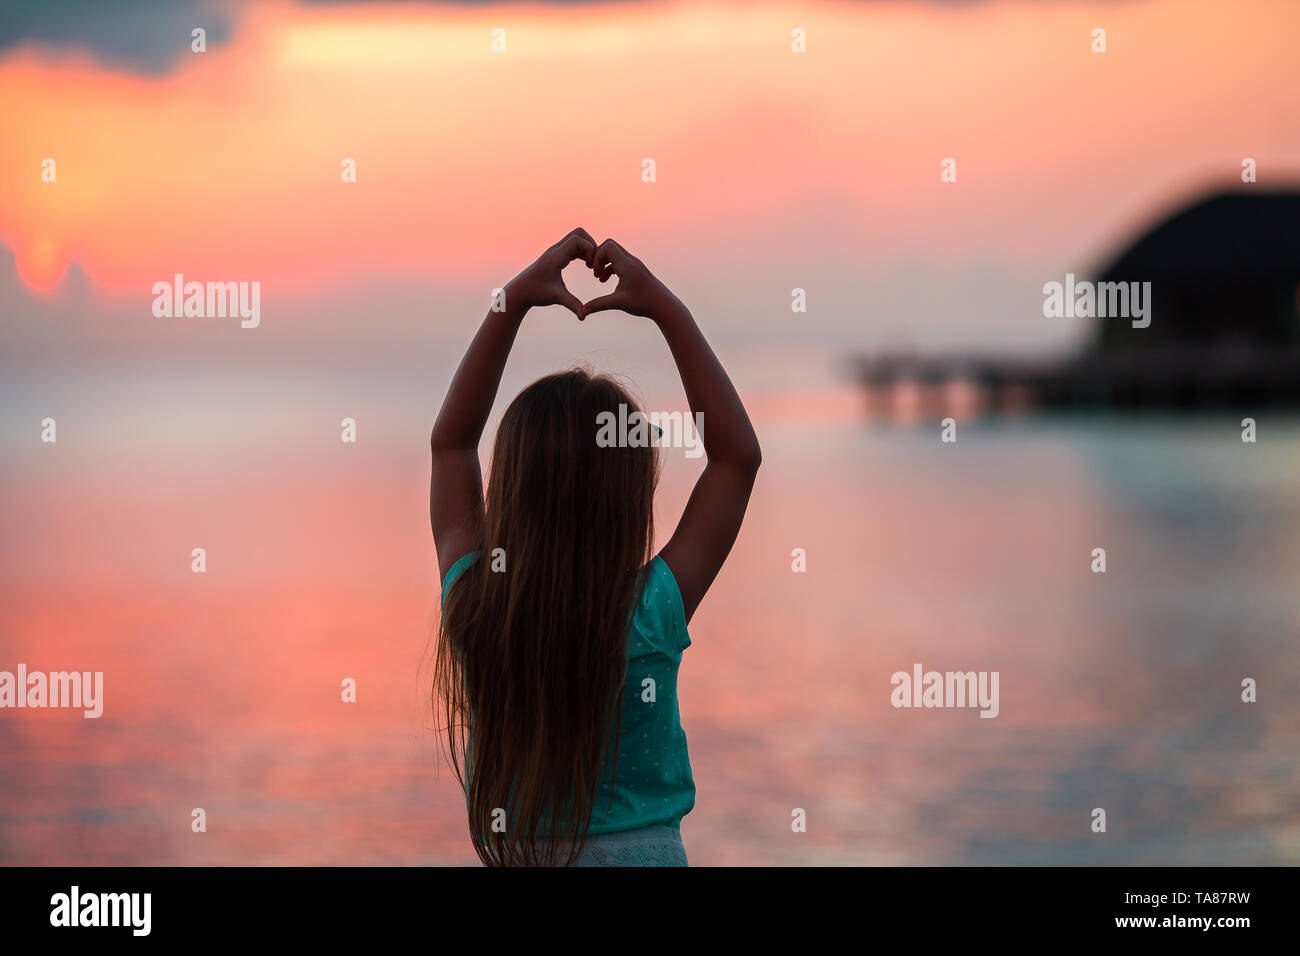 Silhouette of heart made by kids hand at sunset Stock Photo